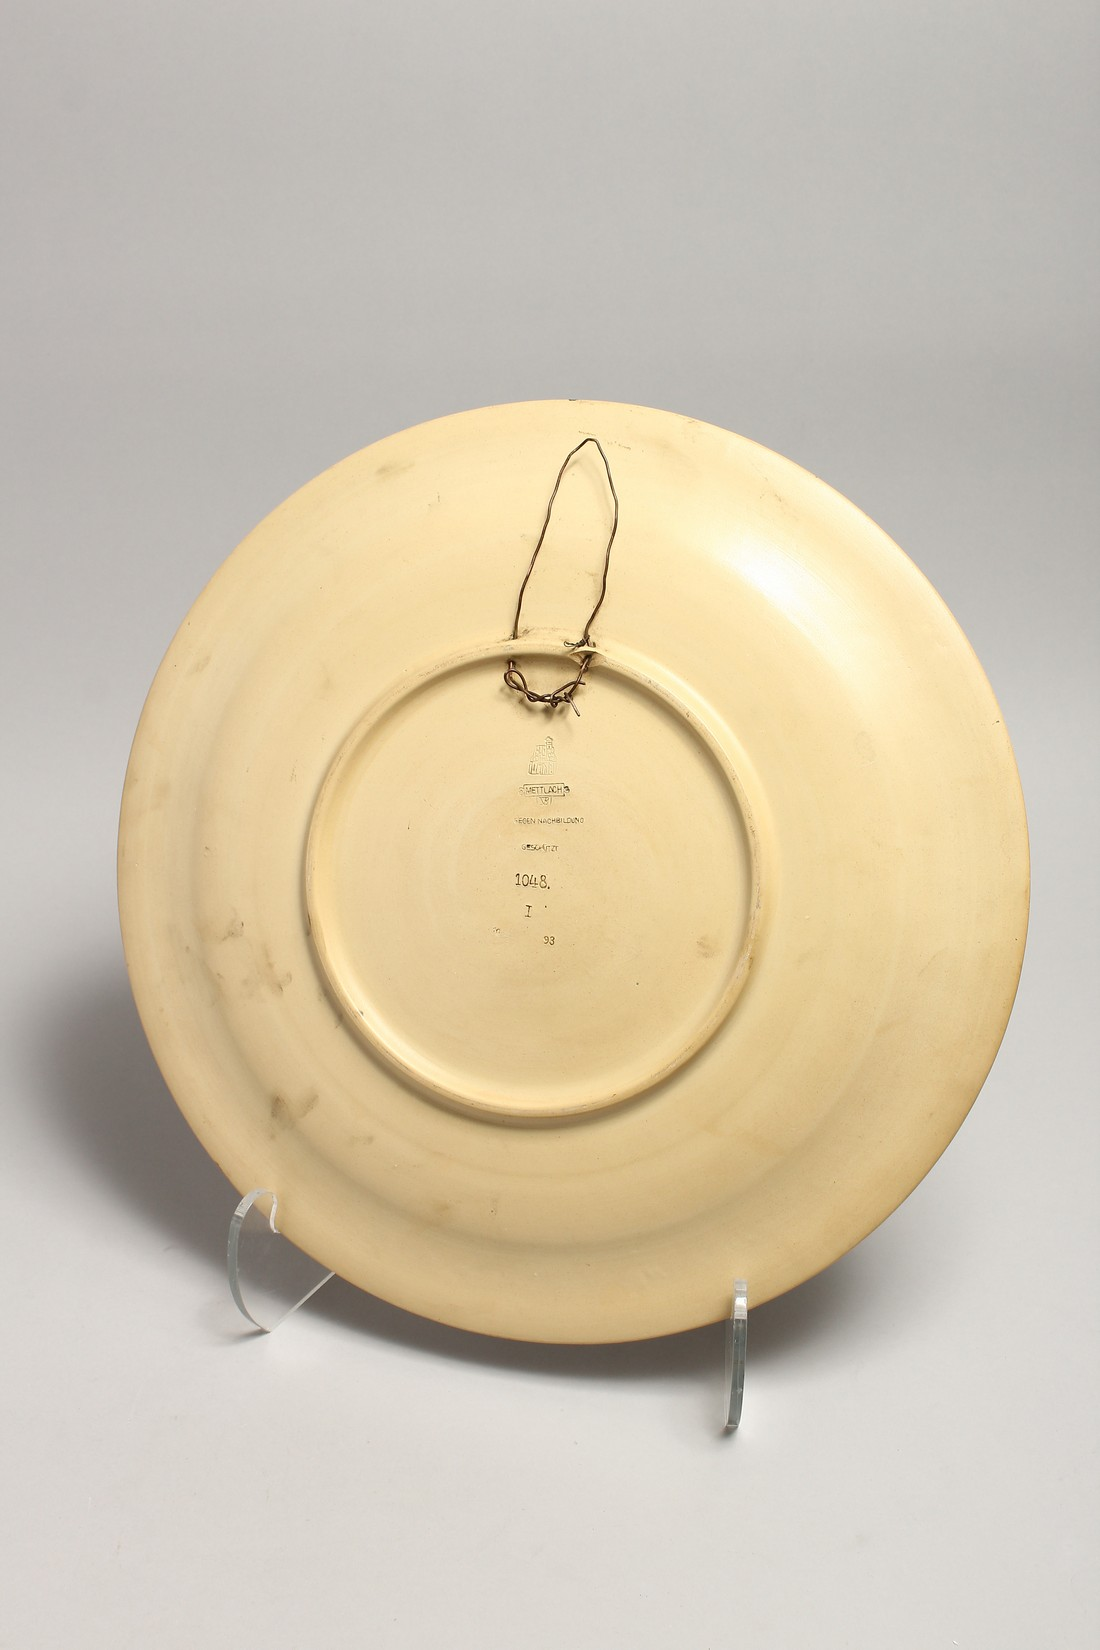 A GOOD METTLACH POTTERY CHARGER. NO. 1048 15.5ins diameter. - Image 2 of 3